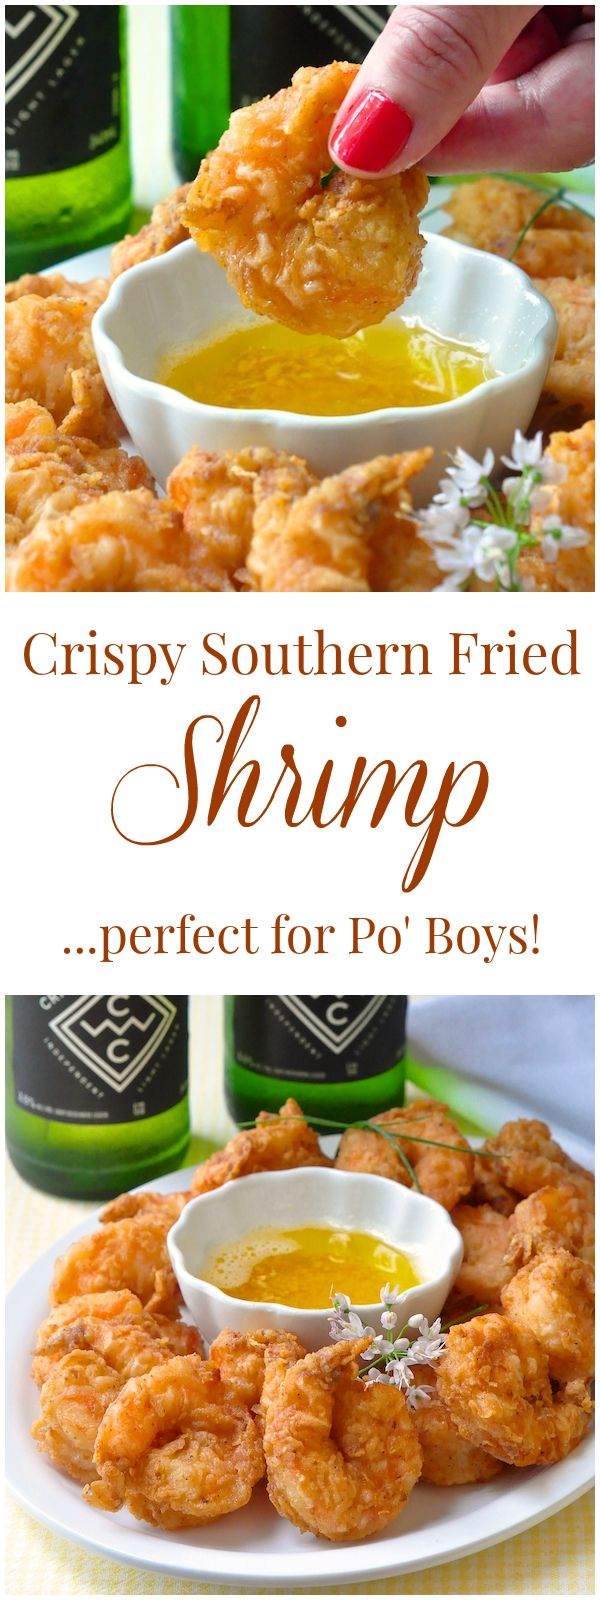 These beautifully seasoned crispy shrimp are very versatile. Have them with oven baked wedge fries for dinner, dipped in garlic butter for party finger food, or piled high in a classic New Orleans Po' Boy Sandwich. Super fast and super easy, you'll make them over and over again!